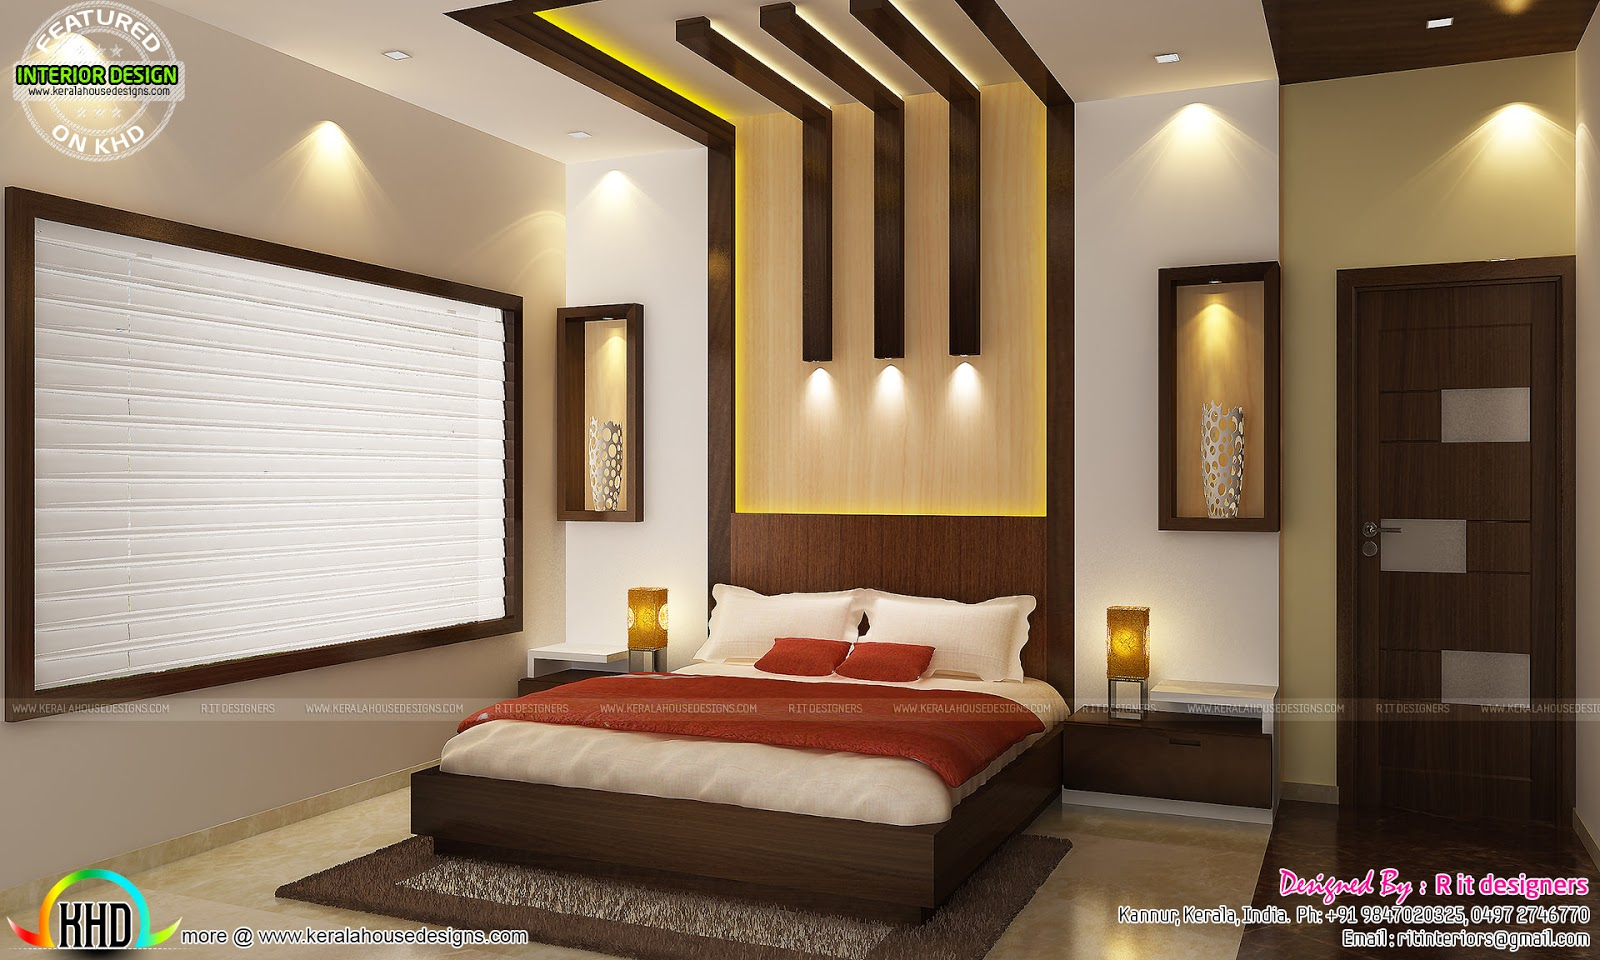 Kitchen living bedroom dining interior decor kerala home design and floor plans - Interior bedroom design ideas teenage bedroom ...